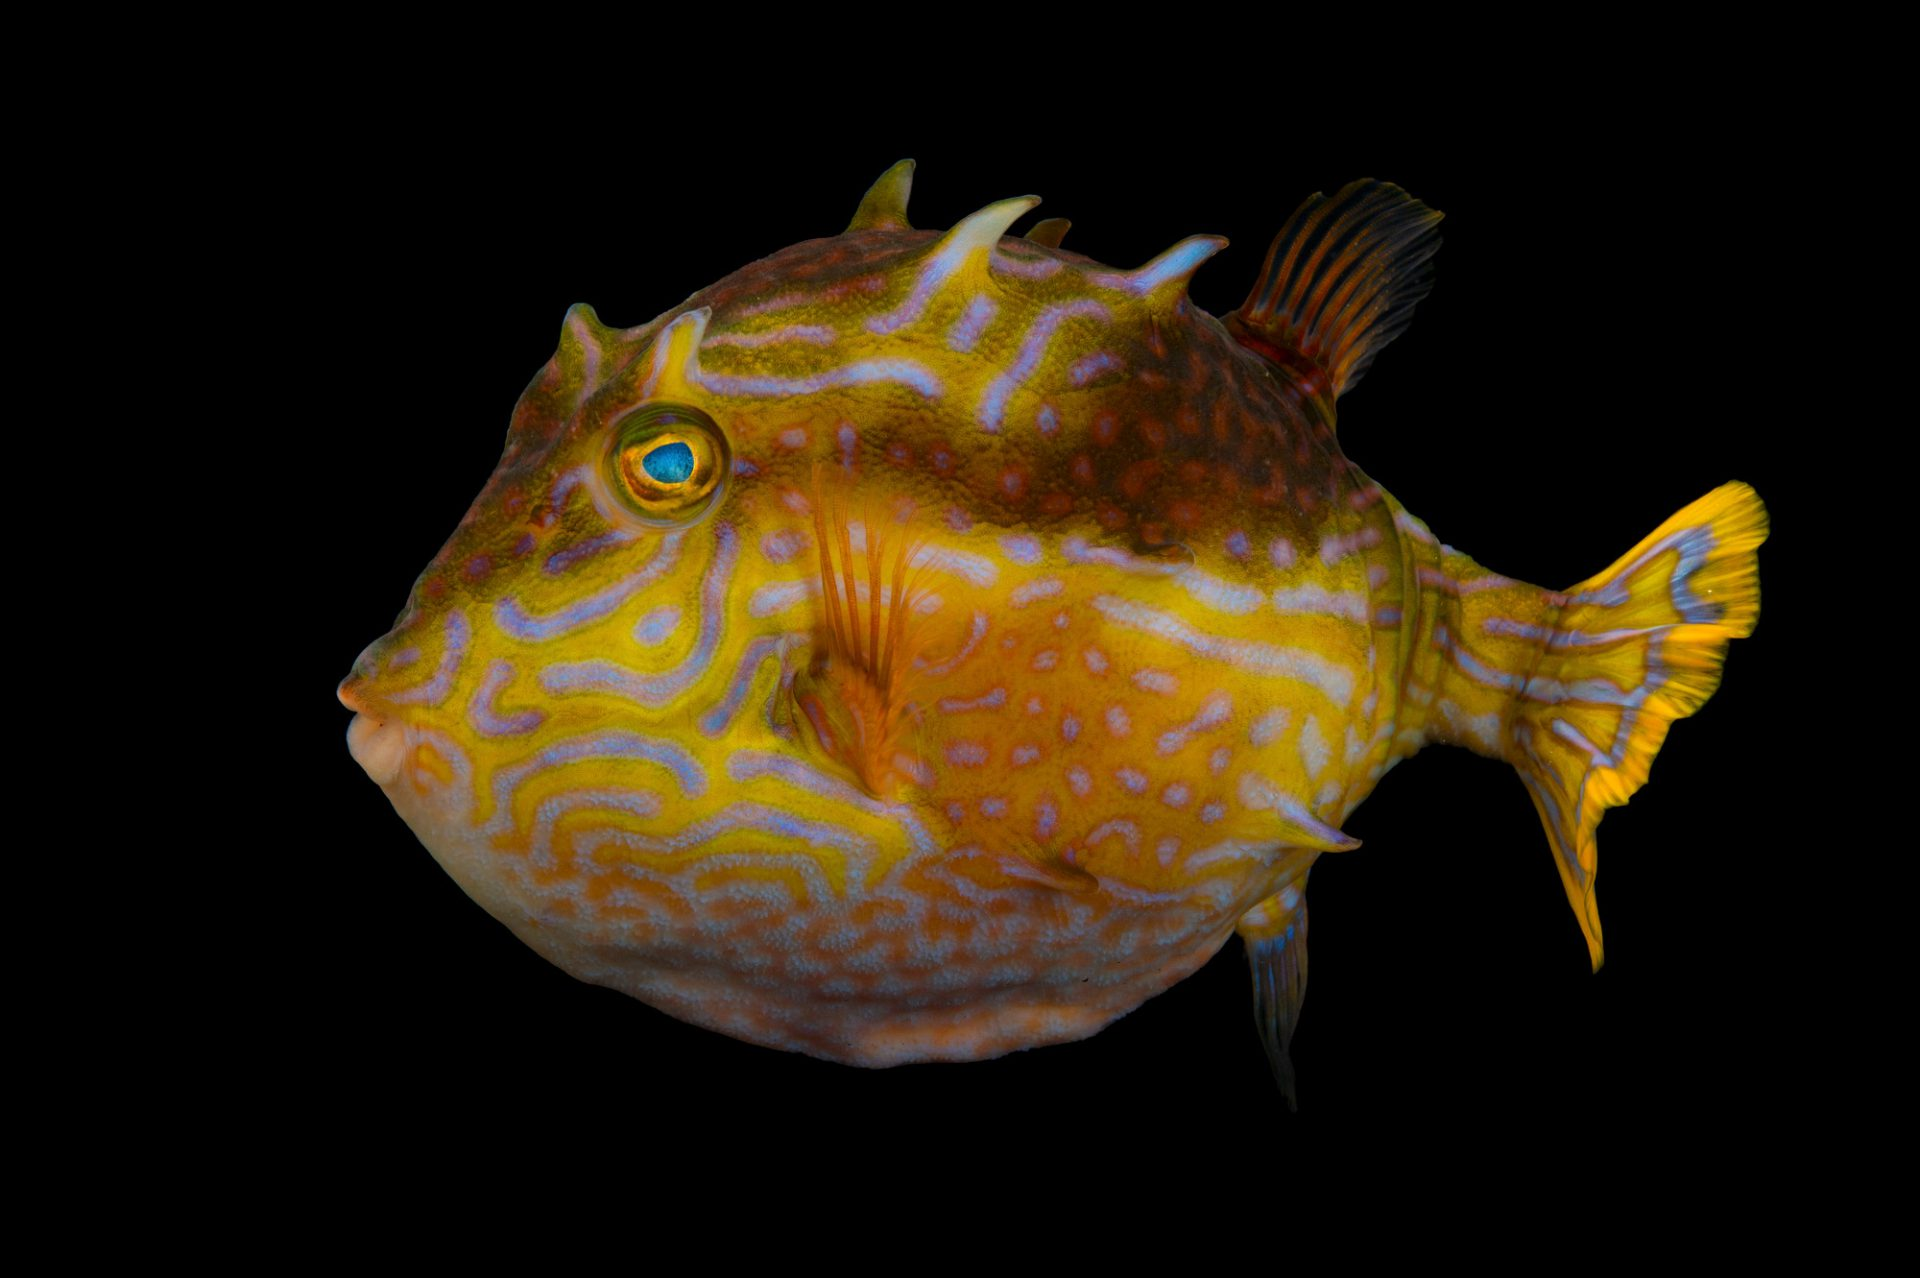 Picture of a male striped cowfish (Aracana aurita) at Omaha's Henry Doorly Zoo and Aquarium.